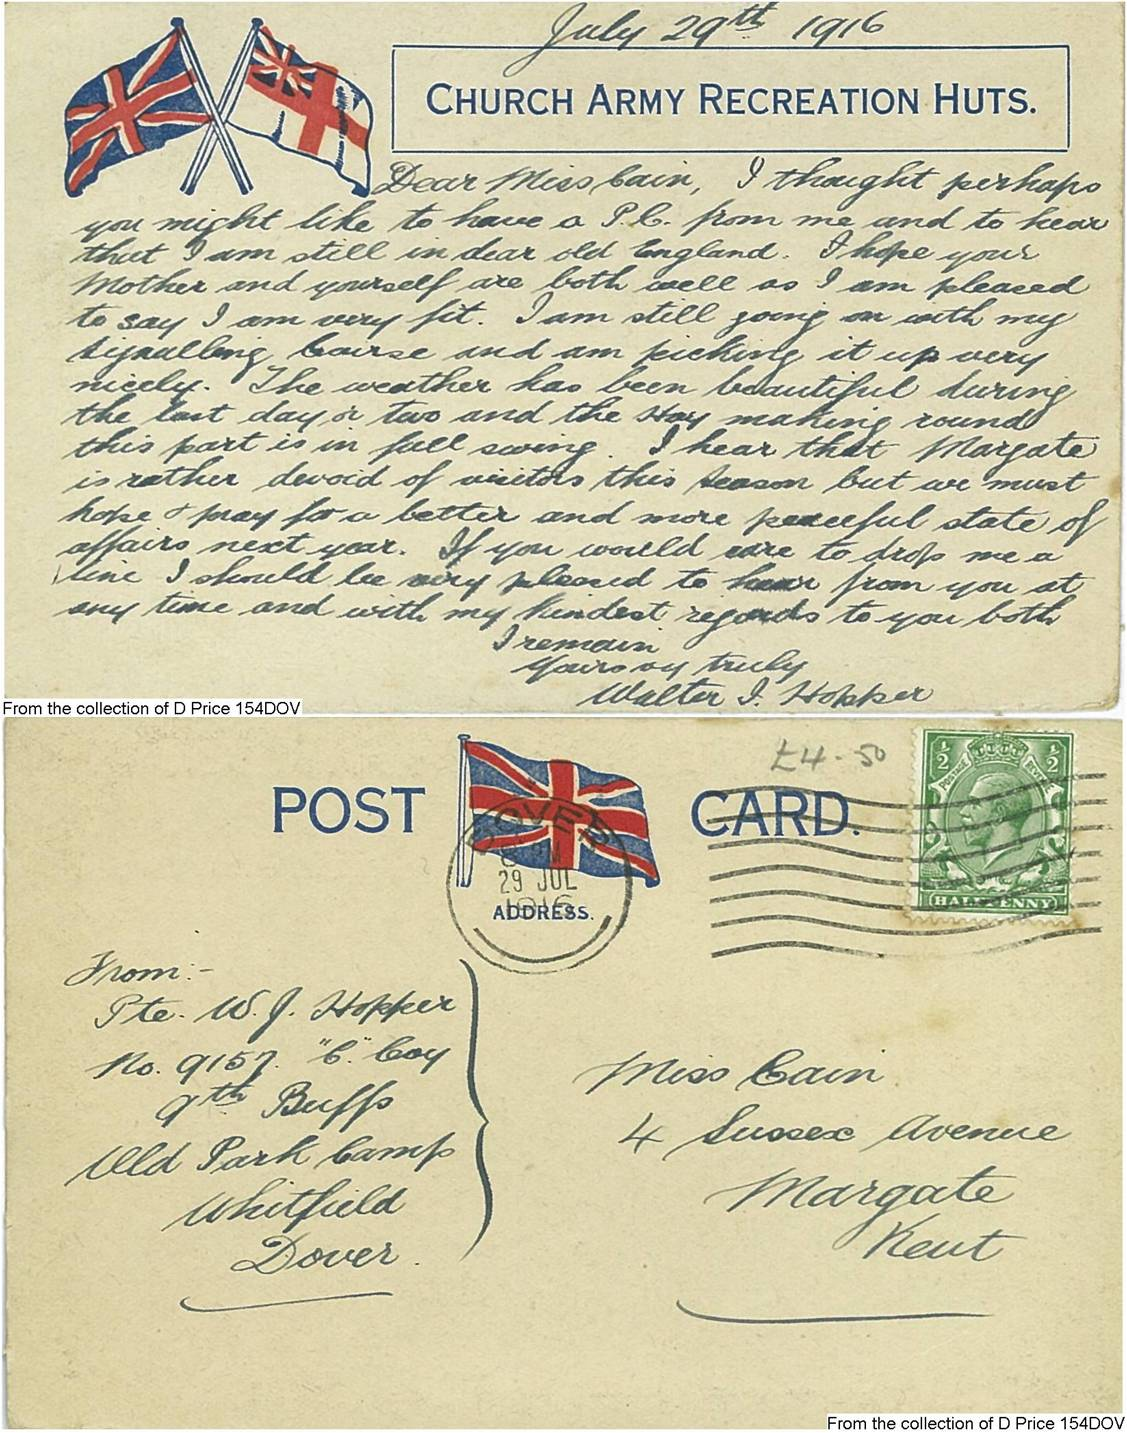 154DOV - Church Army Recreation Huts (Postcard) (Front & Back)